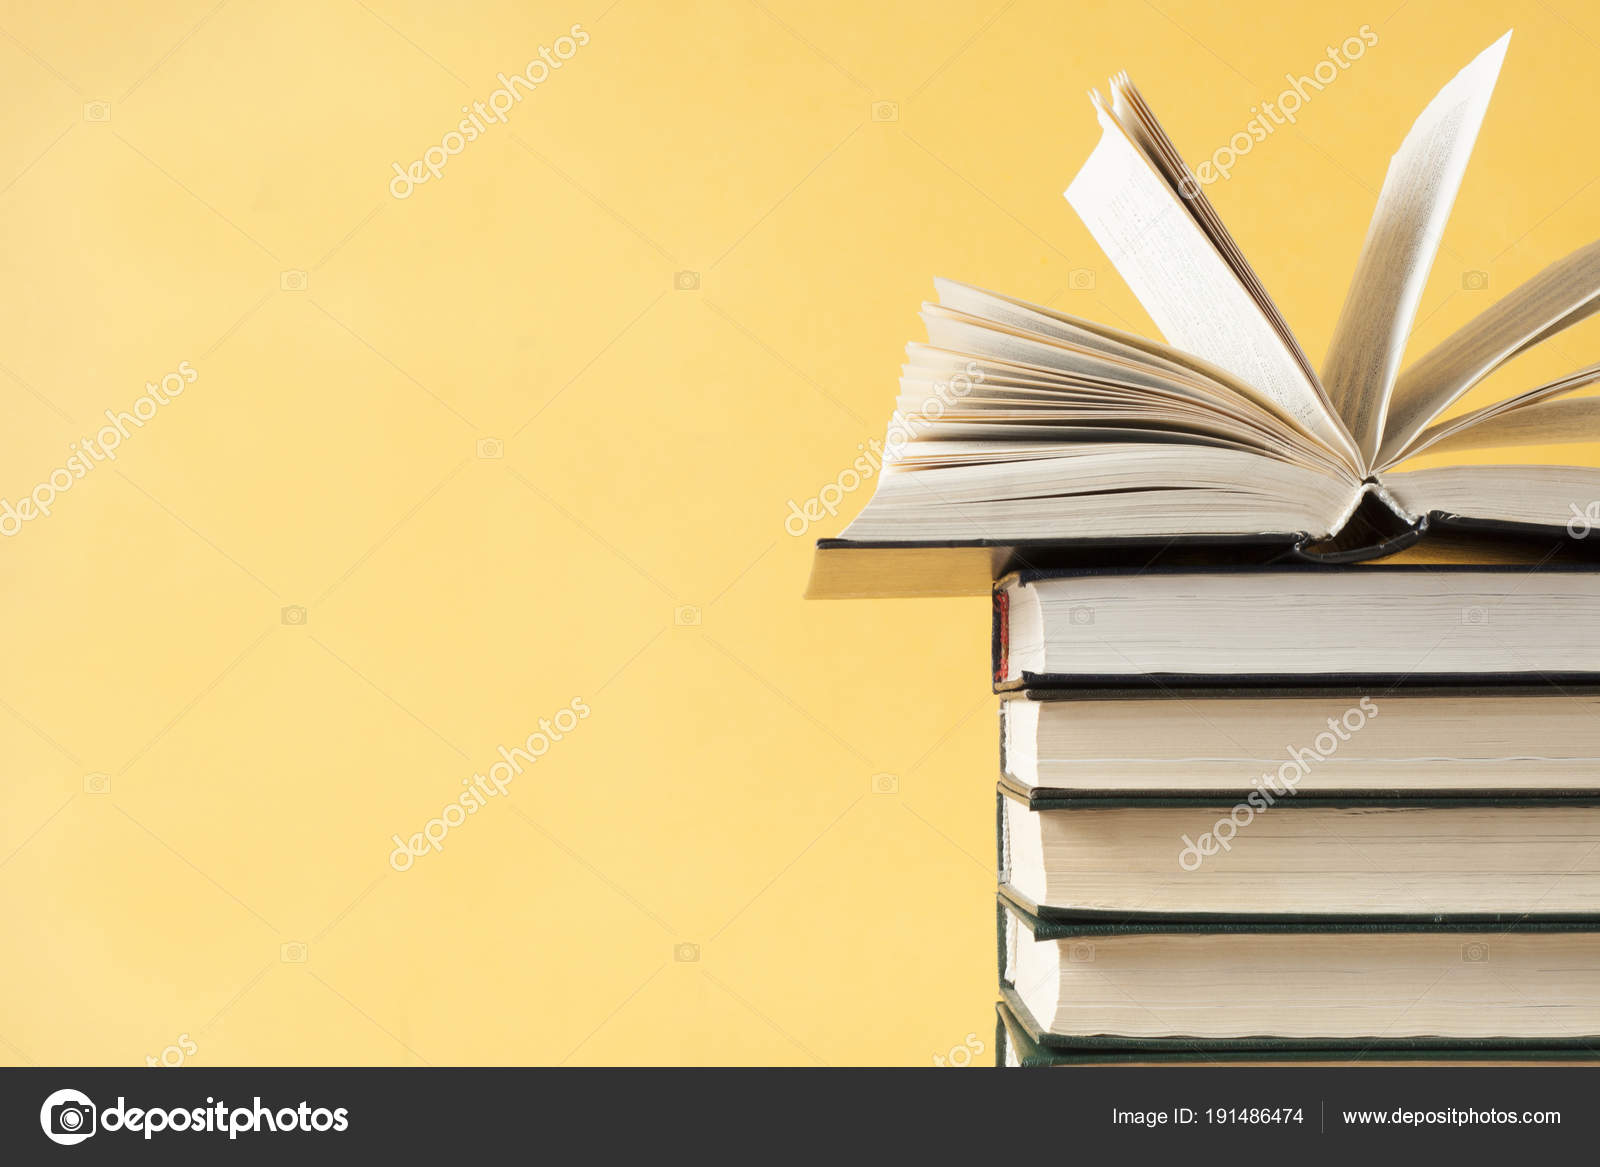 open book on stack of books on wooden table education background